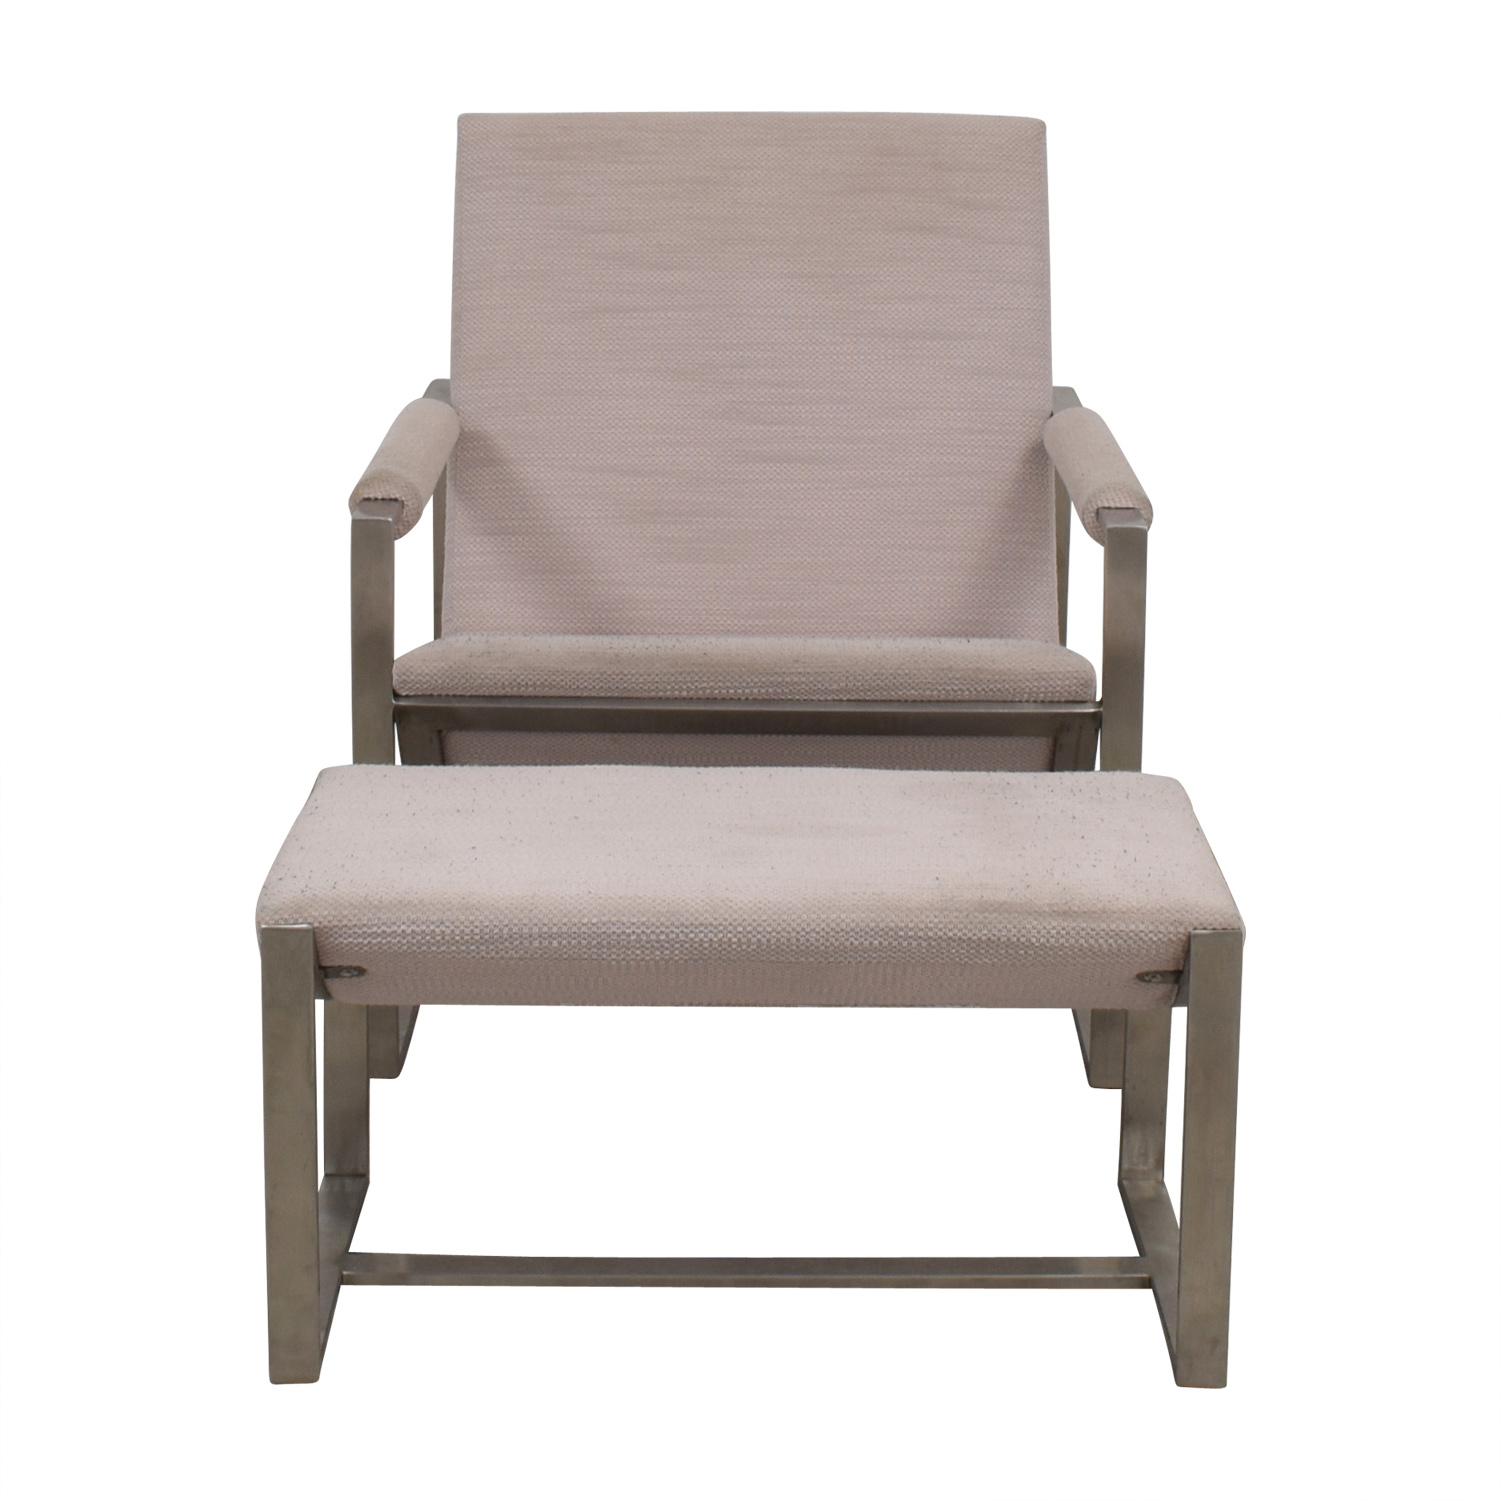 buy West Elm West Elm Cream Chair and Foot Stool online